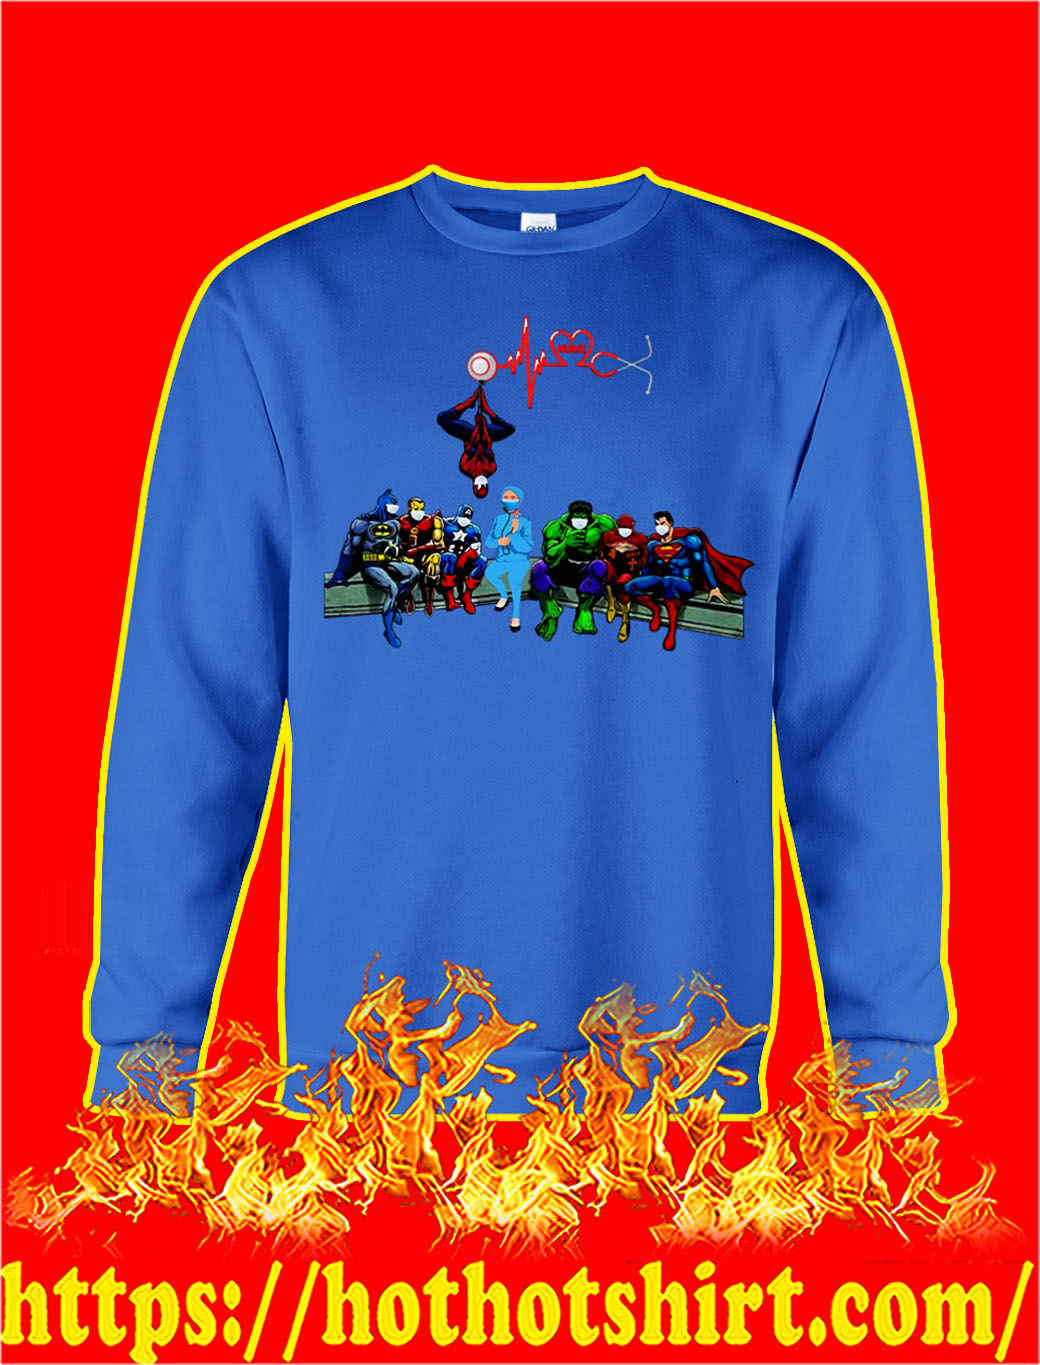 Nurse and super heroes heartbeat sweatshirt